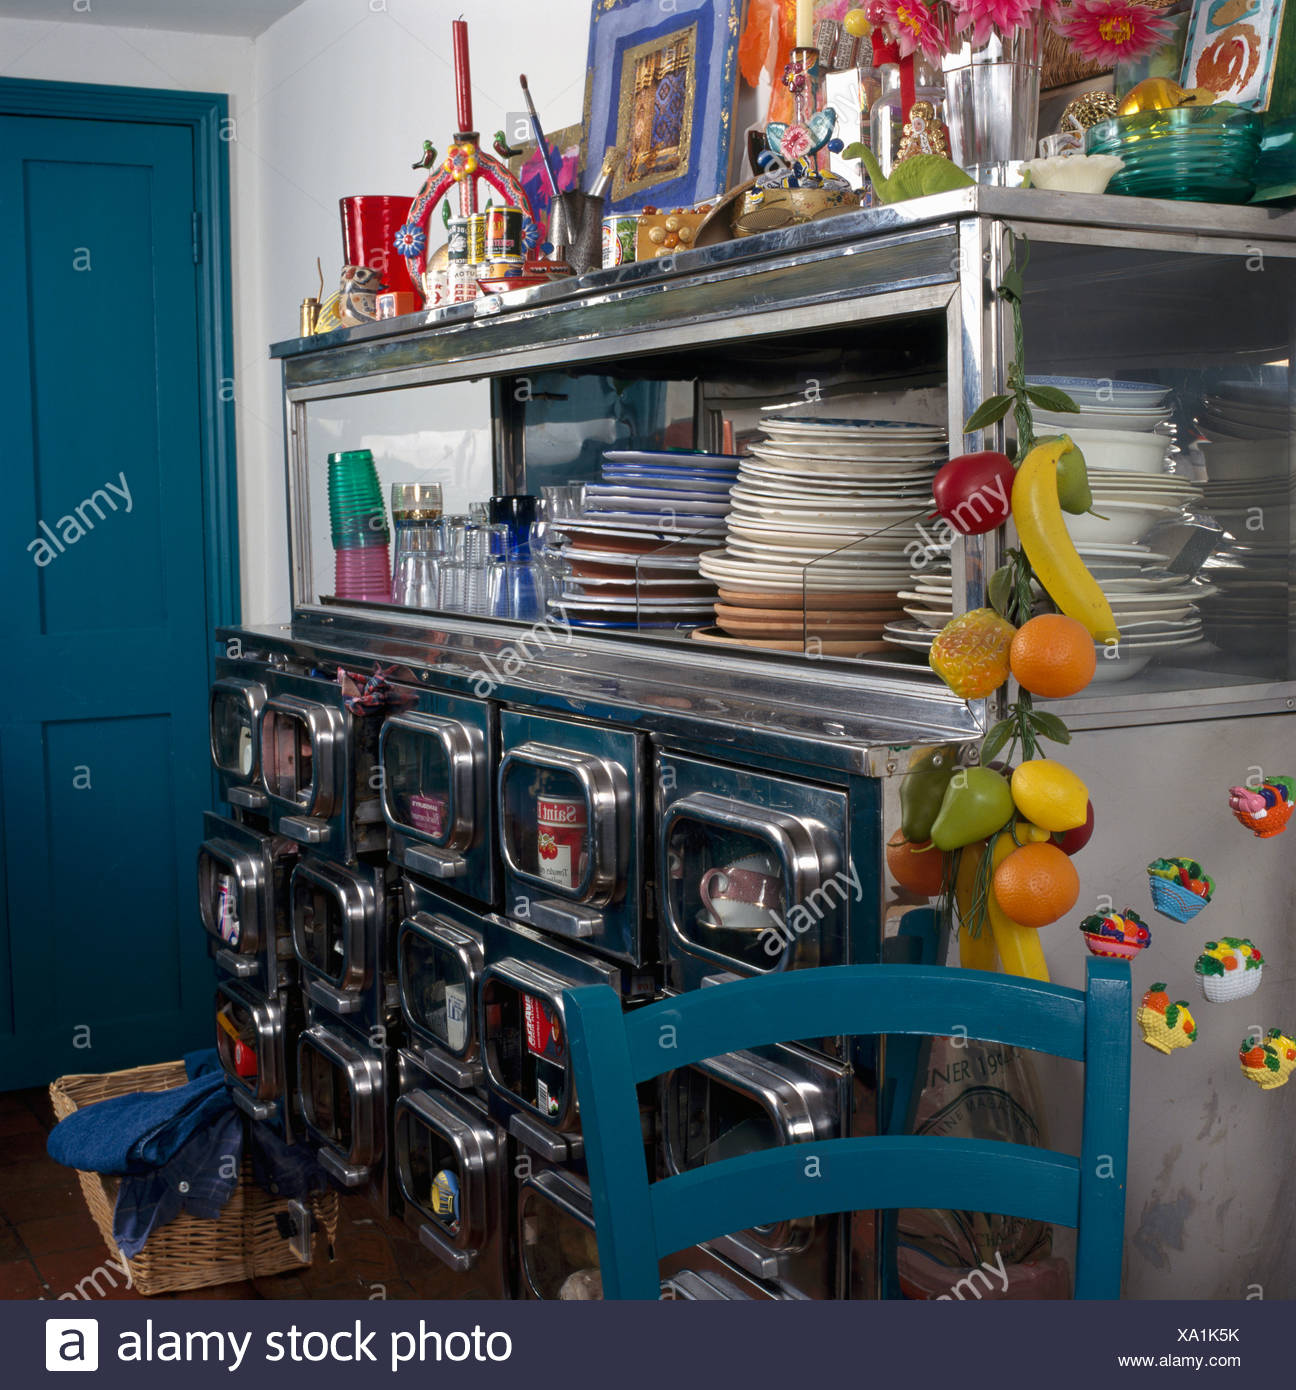 Stacks Of Plates On Fifties Metal Dresser With Storage Drawers And